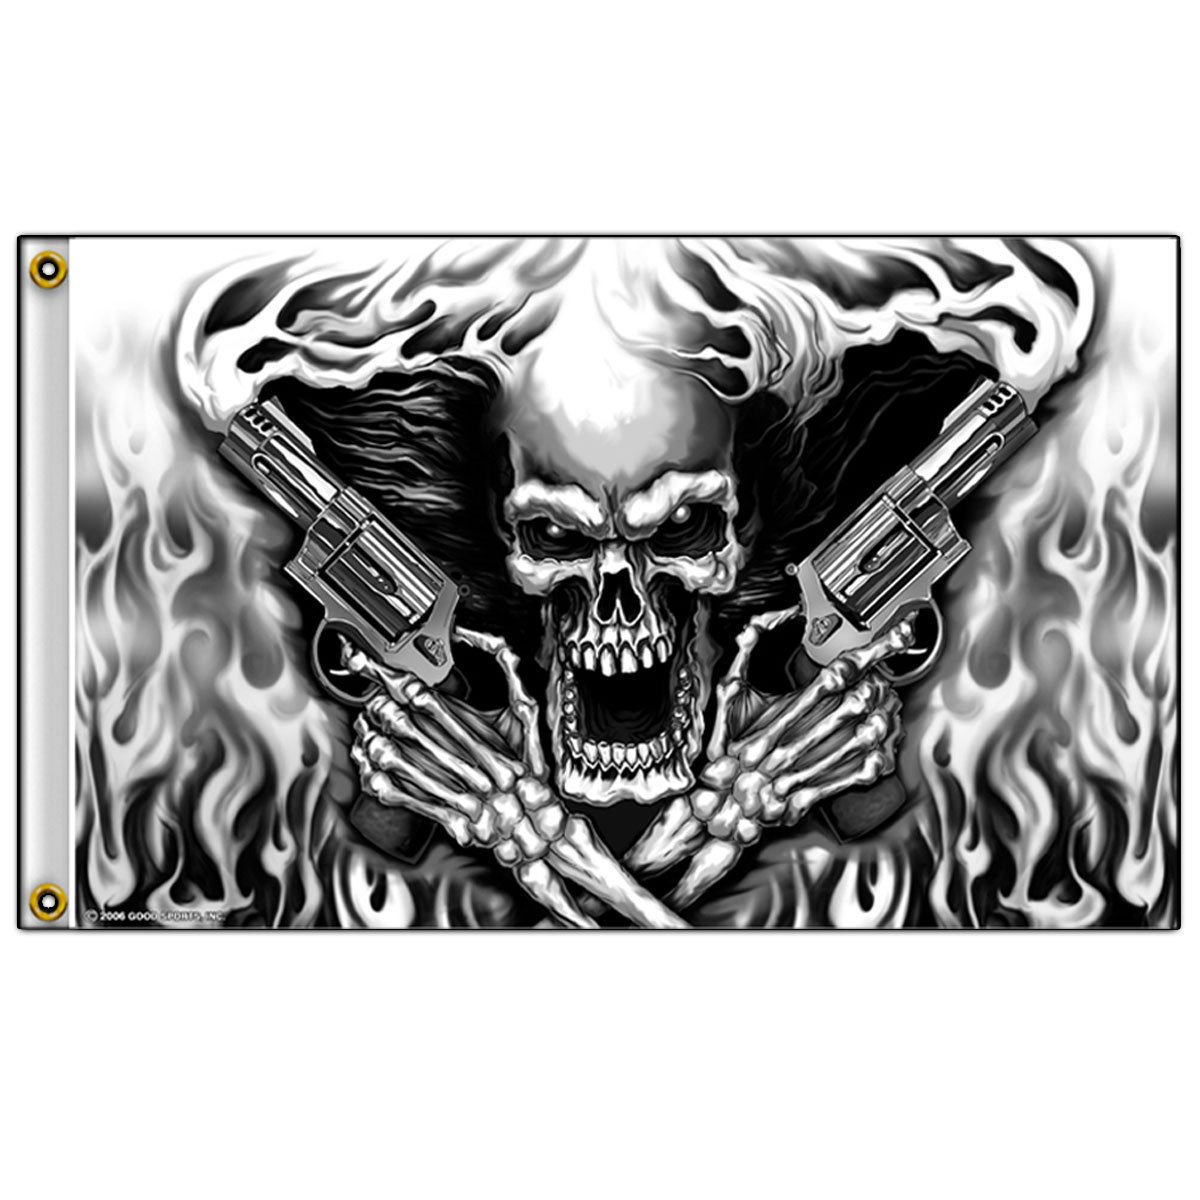 Hot Leathers (fga1024; 3 'x5' Multicolor Assassin Totenkopf Flagge von Hot Leathers